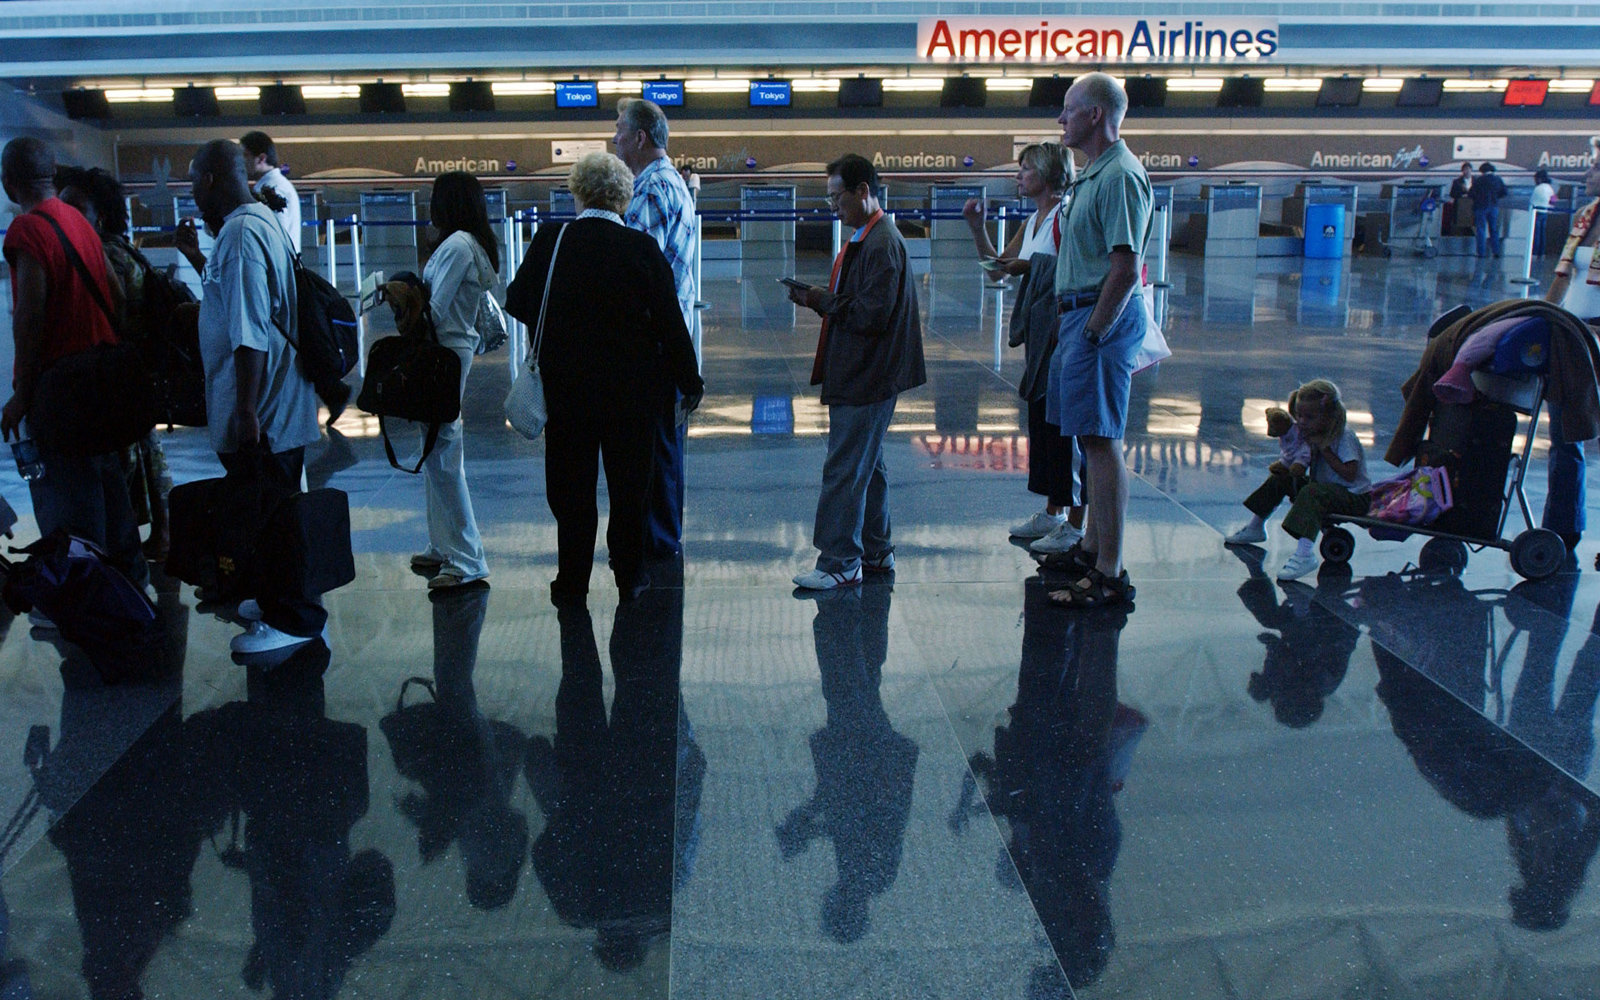 Passengers wait in line in front of an American Airlines ticket area.